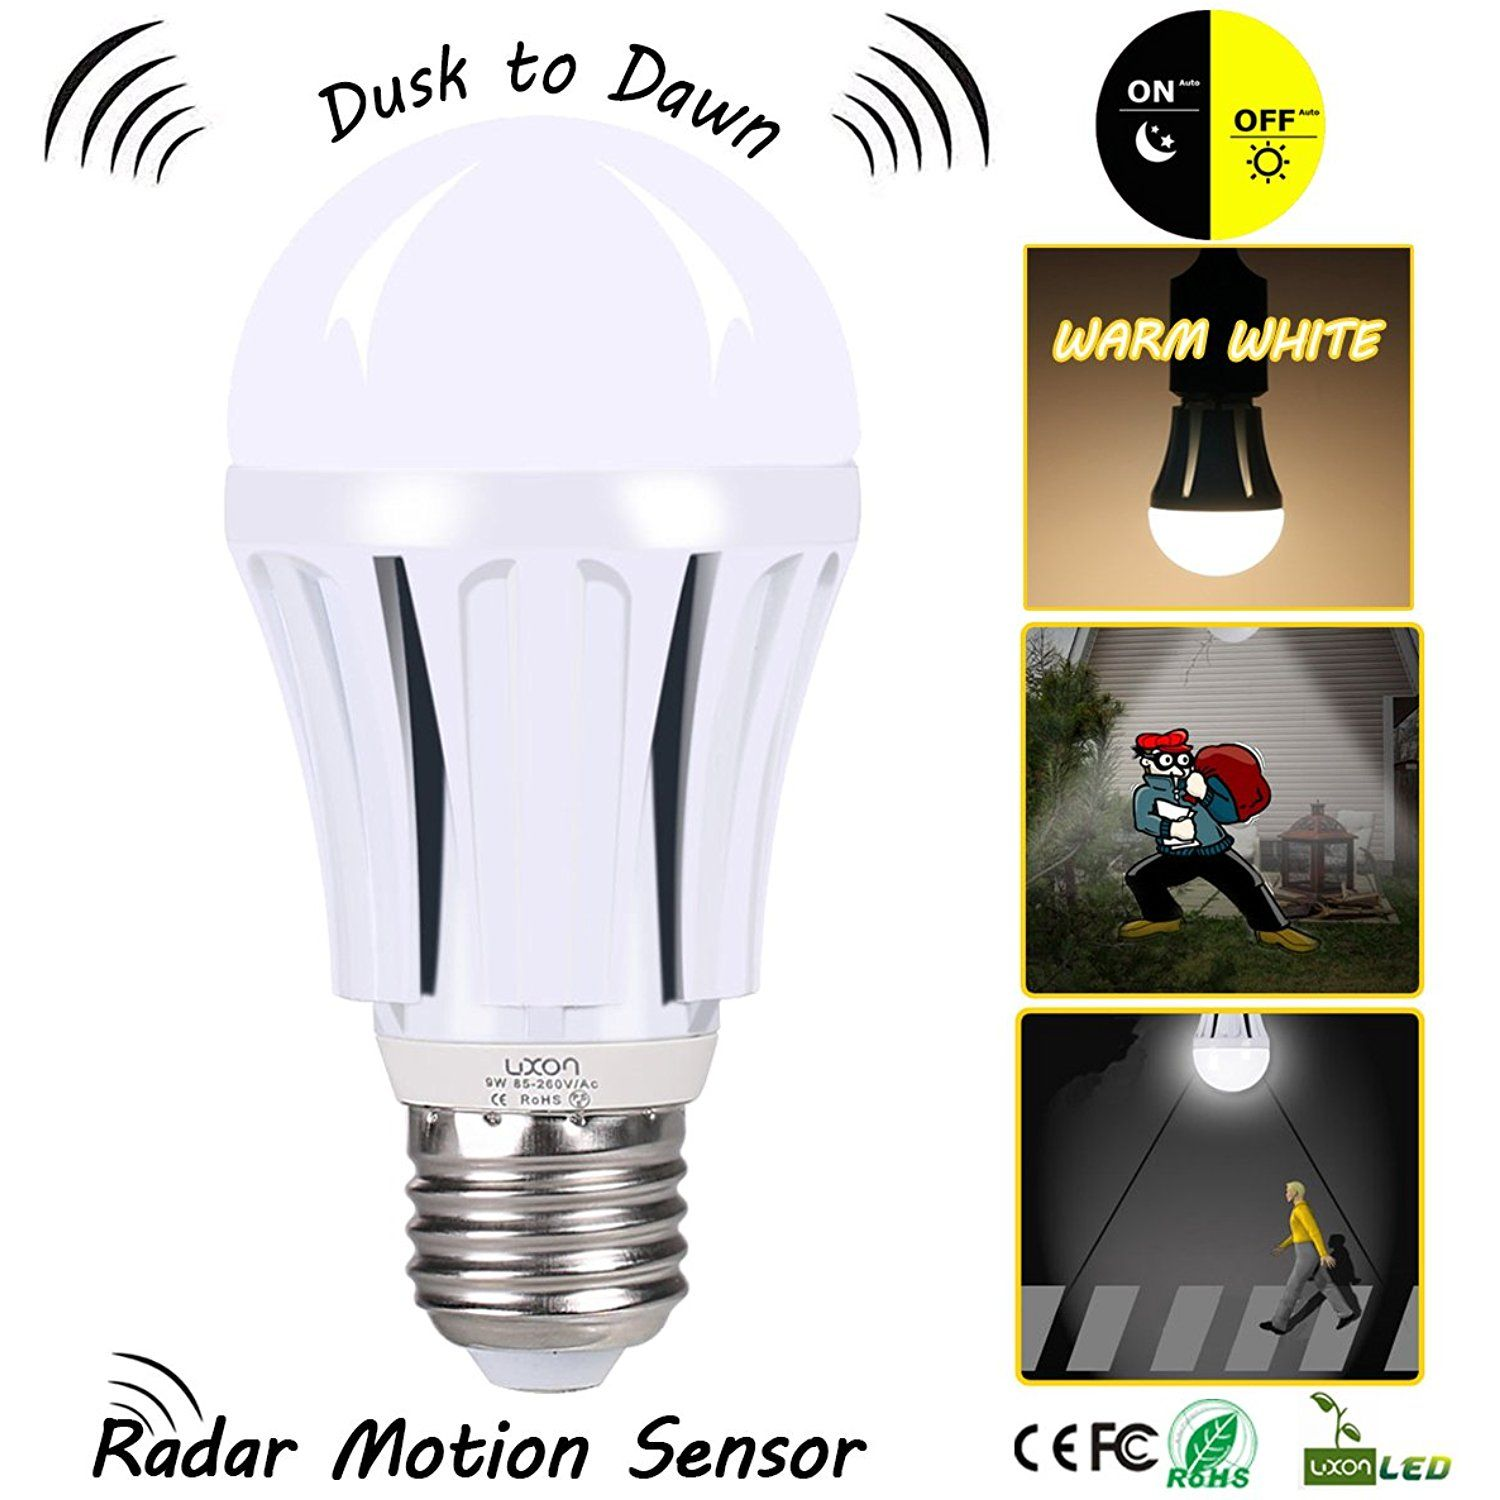 Dusk To Dawn Led Motion Sensor Light Bulb 100 Watt Equivalent 9w A19 E26 Radar Led Sensor Night Light Motion Sensor Lights Sensor Night Lights Motion Sensor